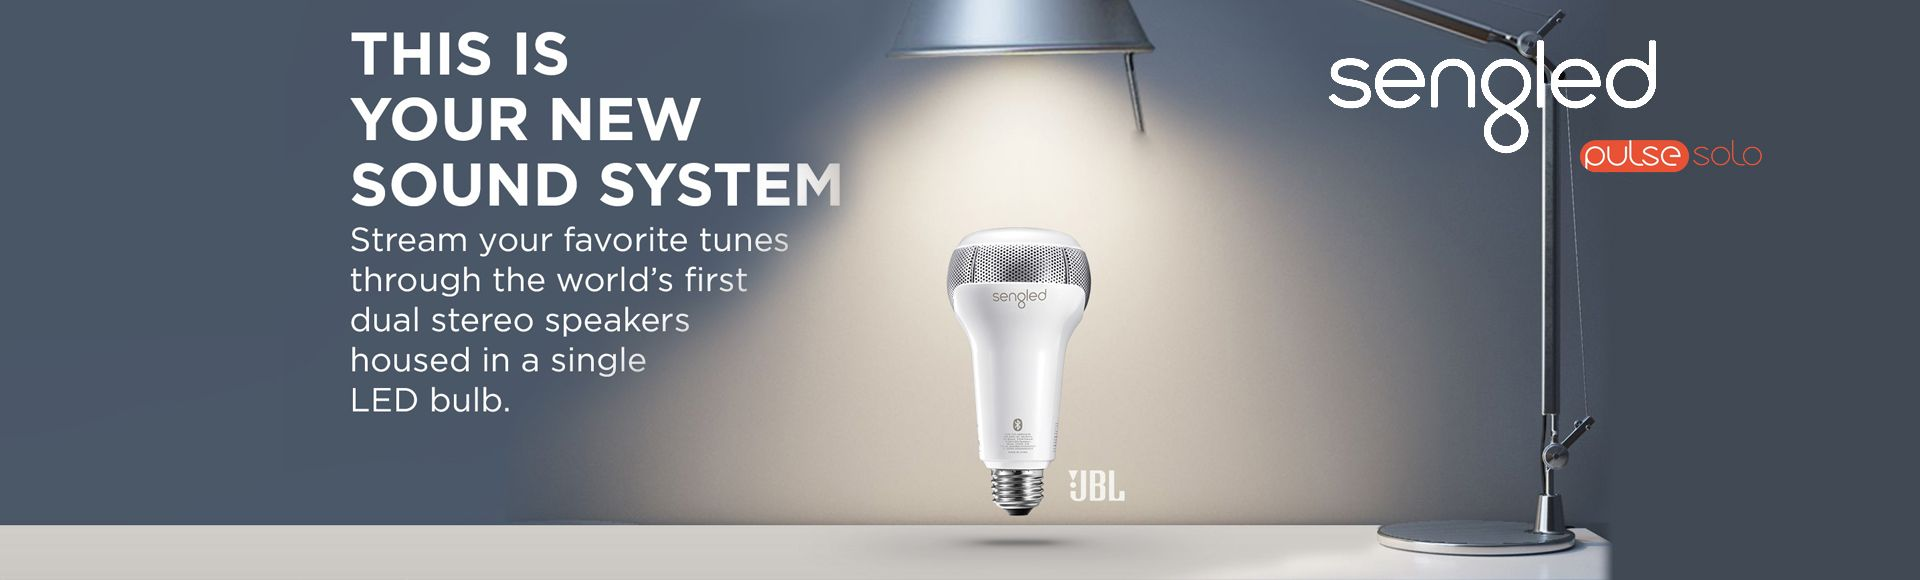 Sengled Pulse Solo - The world's first LED light and dual stereo speakers in one bulb